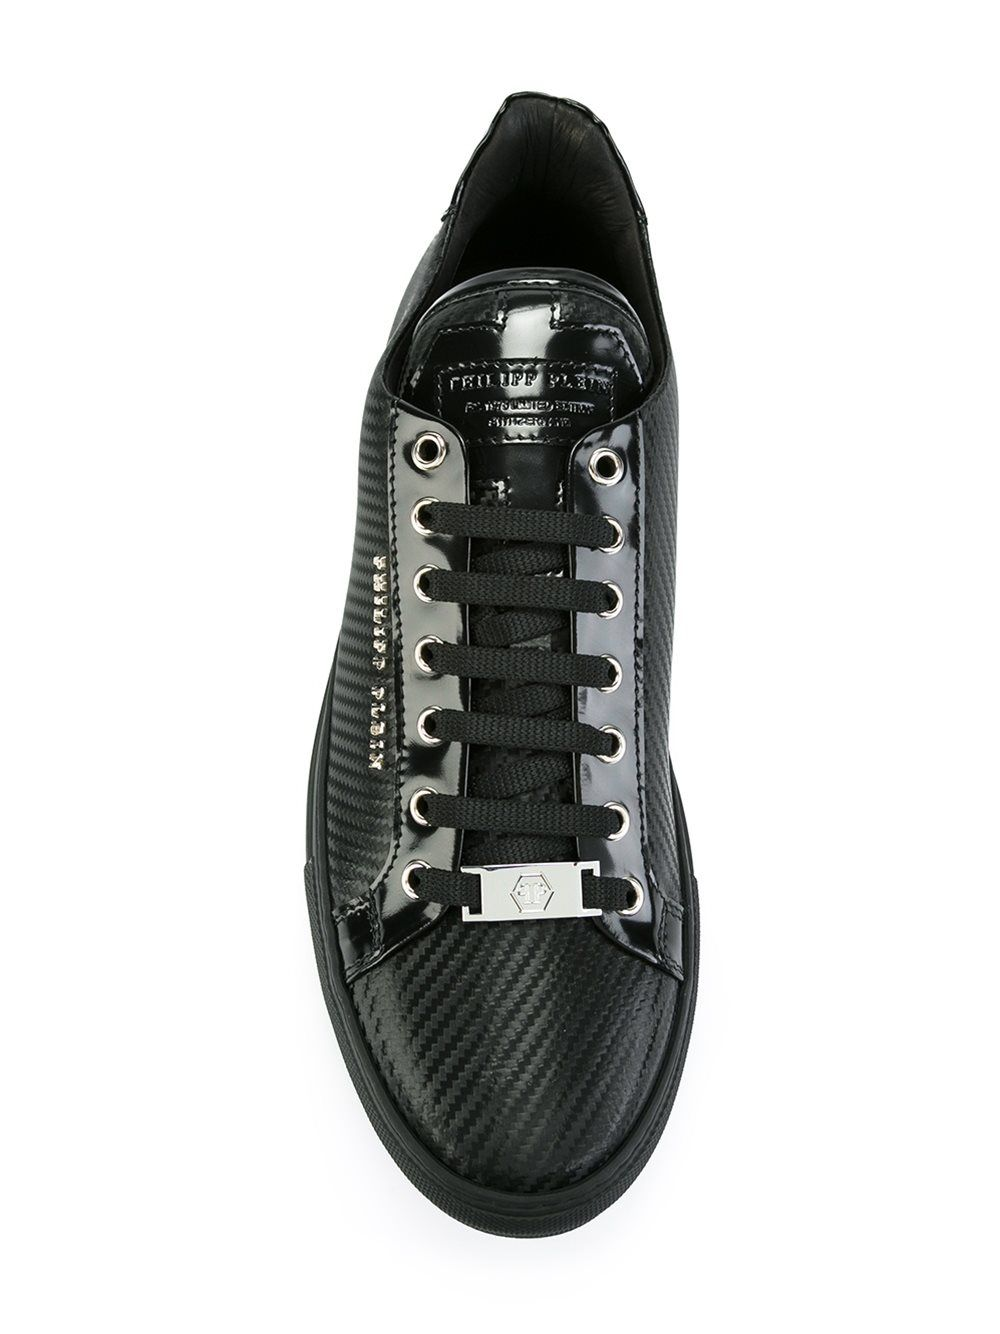 275bffd2882 Philipp Plein 'Room' sneakers | MEN'S FOOTWEAR in 2019 | Philipp ...